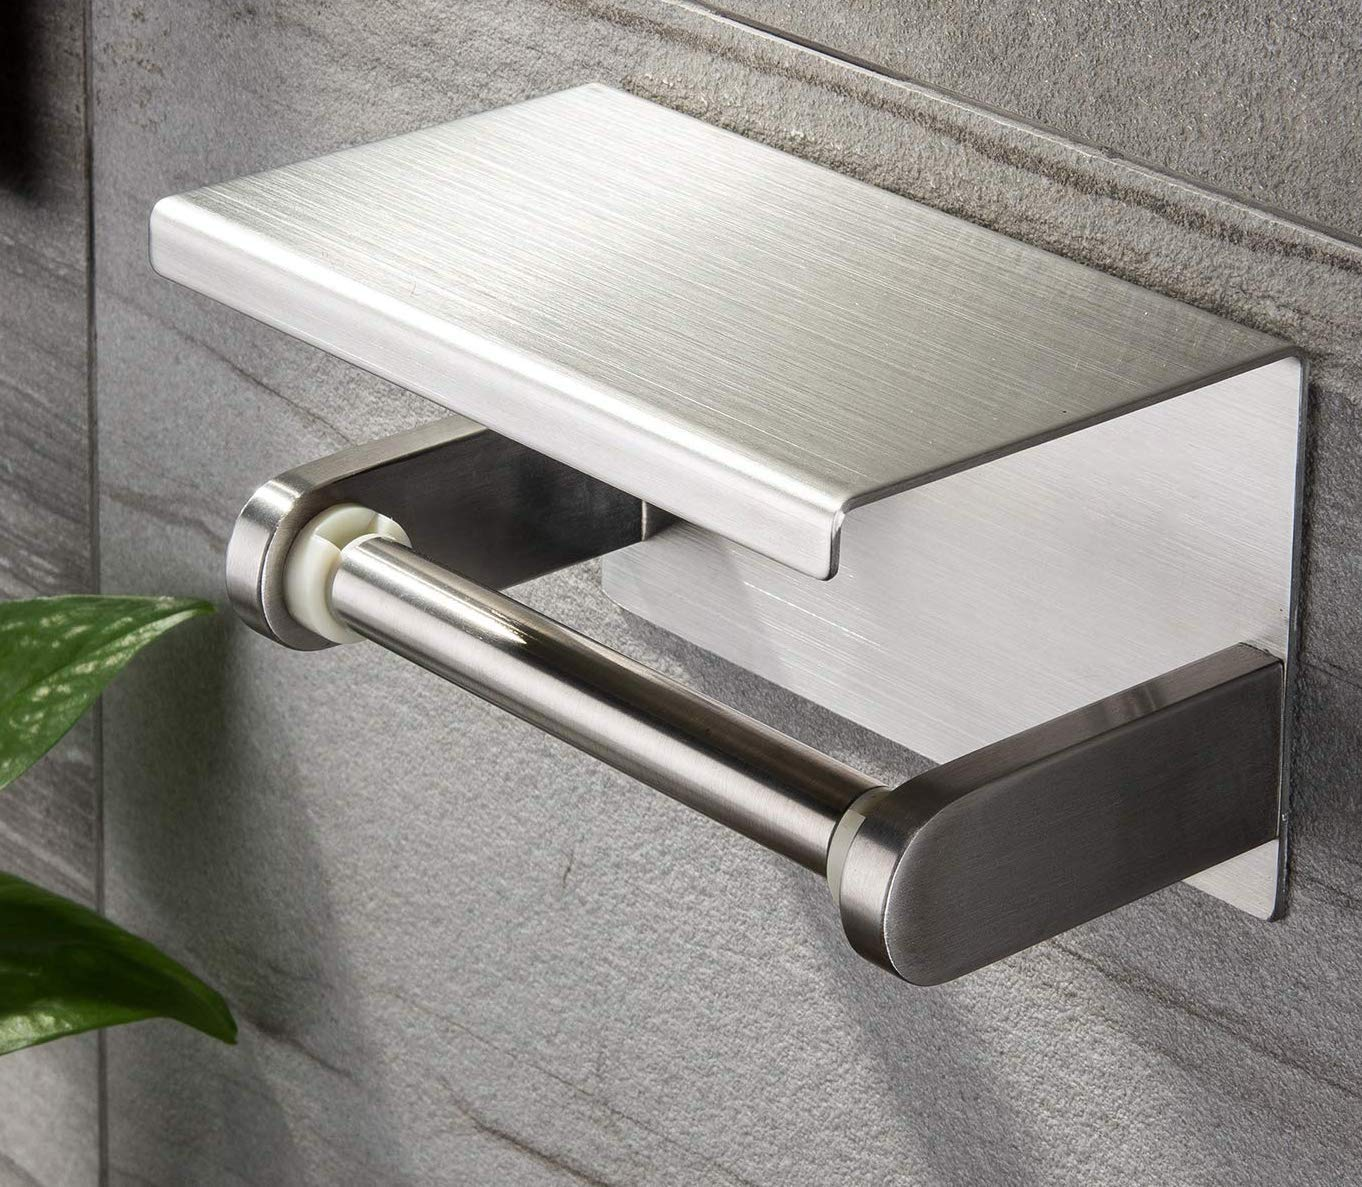 YIGII Toilet Paper Holder with Shelf - Stainless Steel Toilet Roll Holder Self Adhesive or Wall Mounted for Bathroom by YIGII